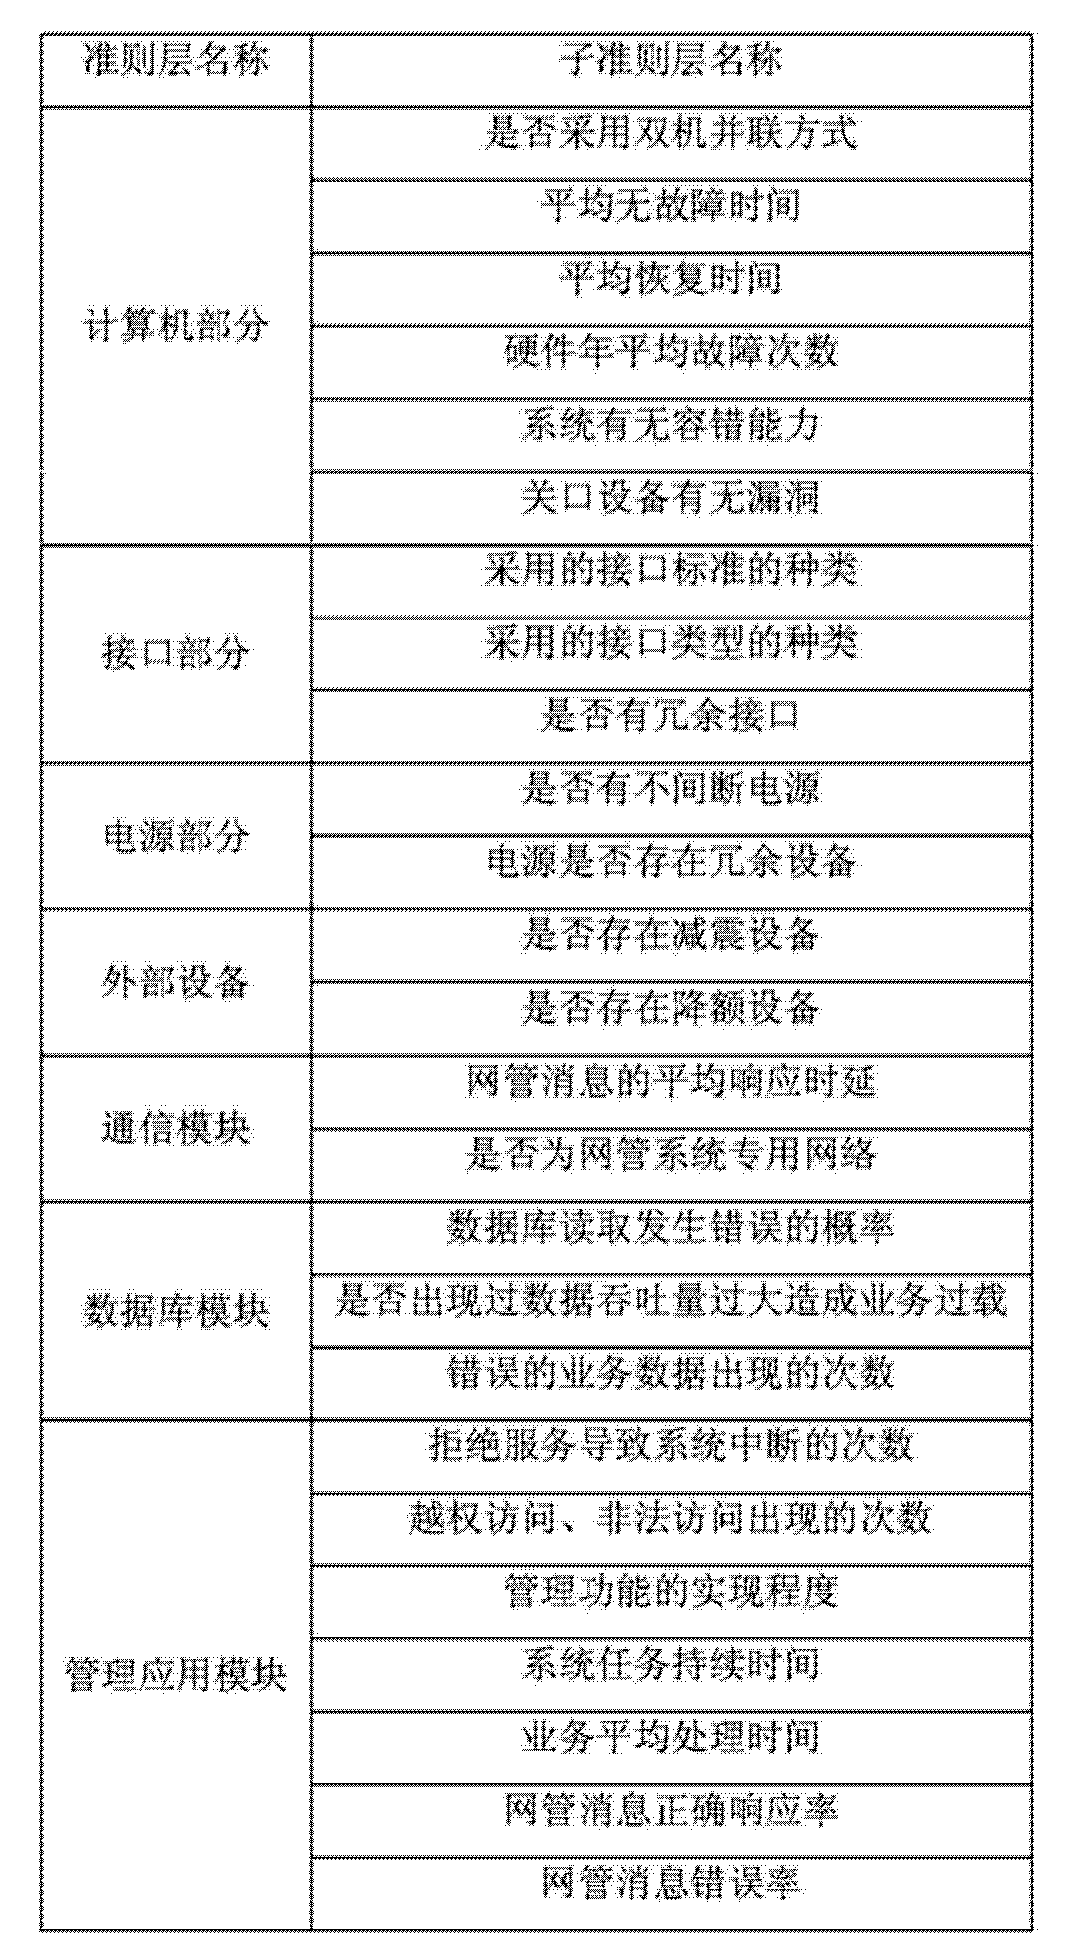 CN103716177A - Security risk assessment method and apparatus